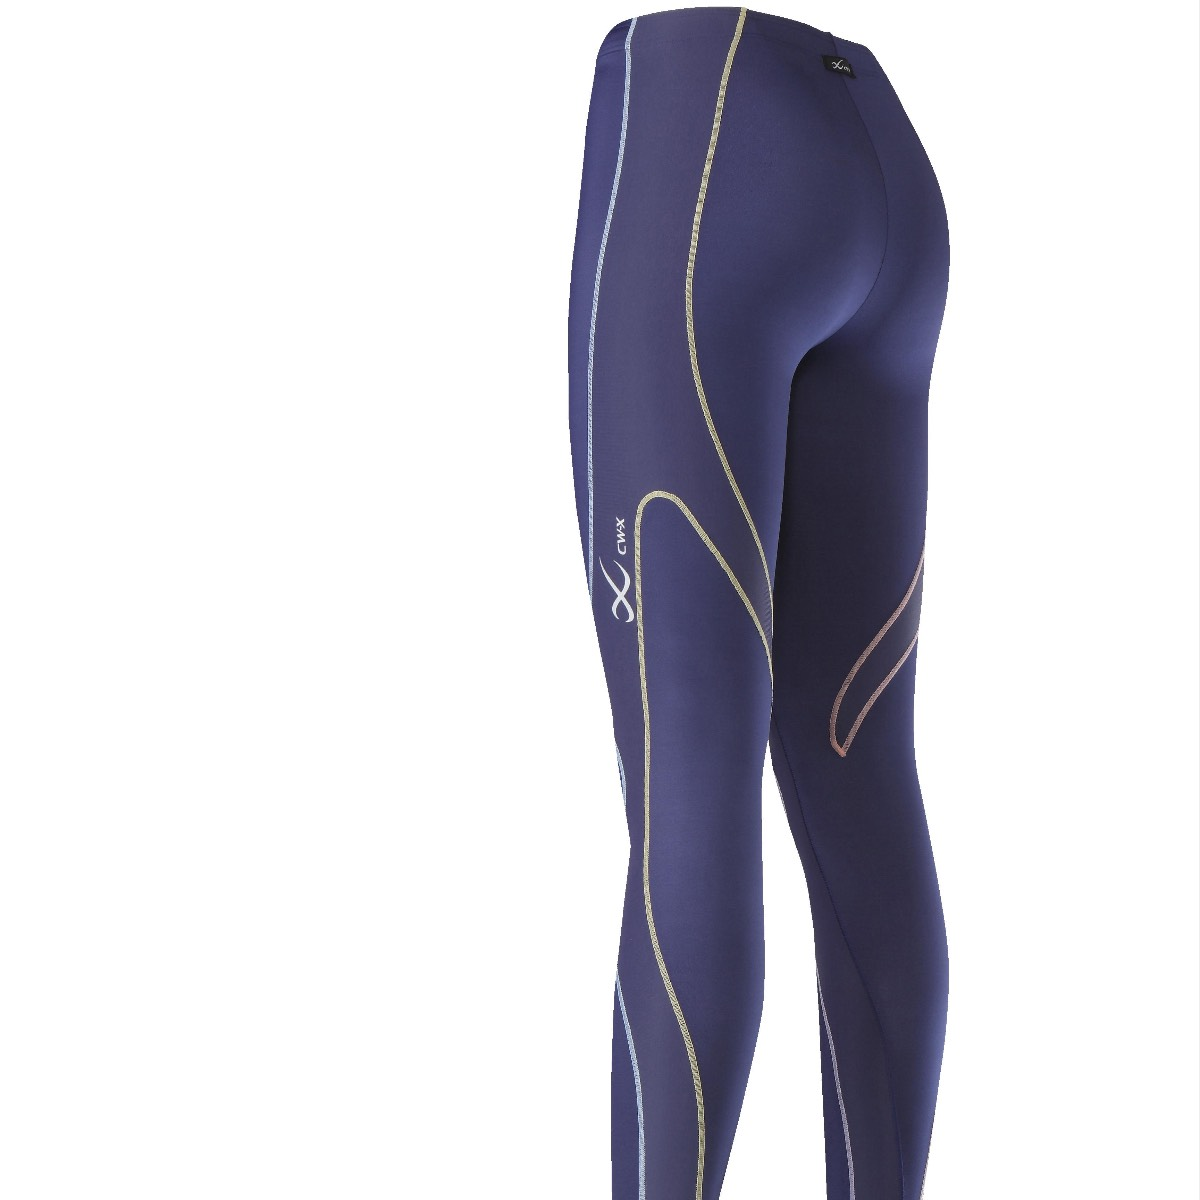 Cw-x Sports Compression Female3